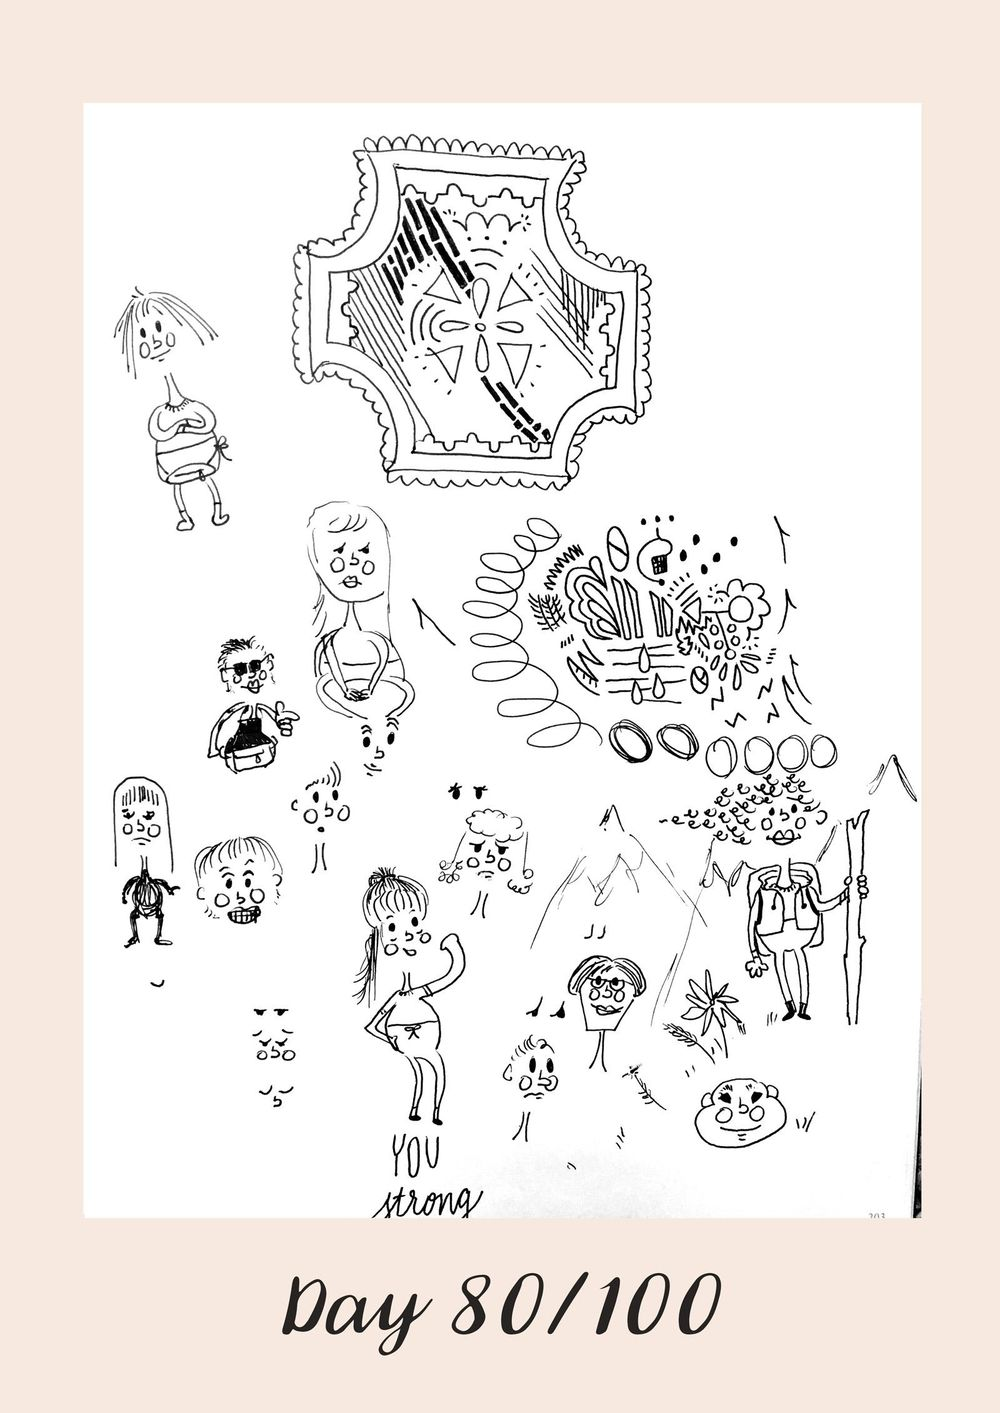 *COMPLETE* 100 Days of Sketching (Updated March 10th, Day 100/100) - image 95 - student project